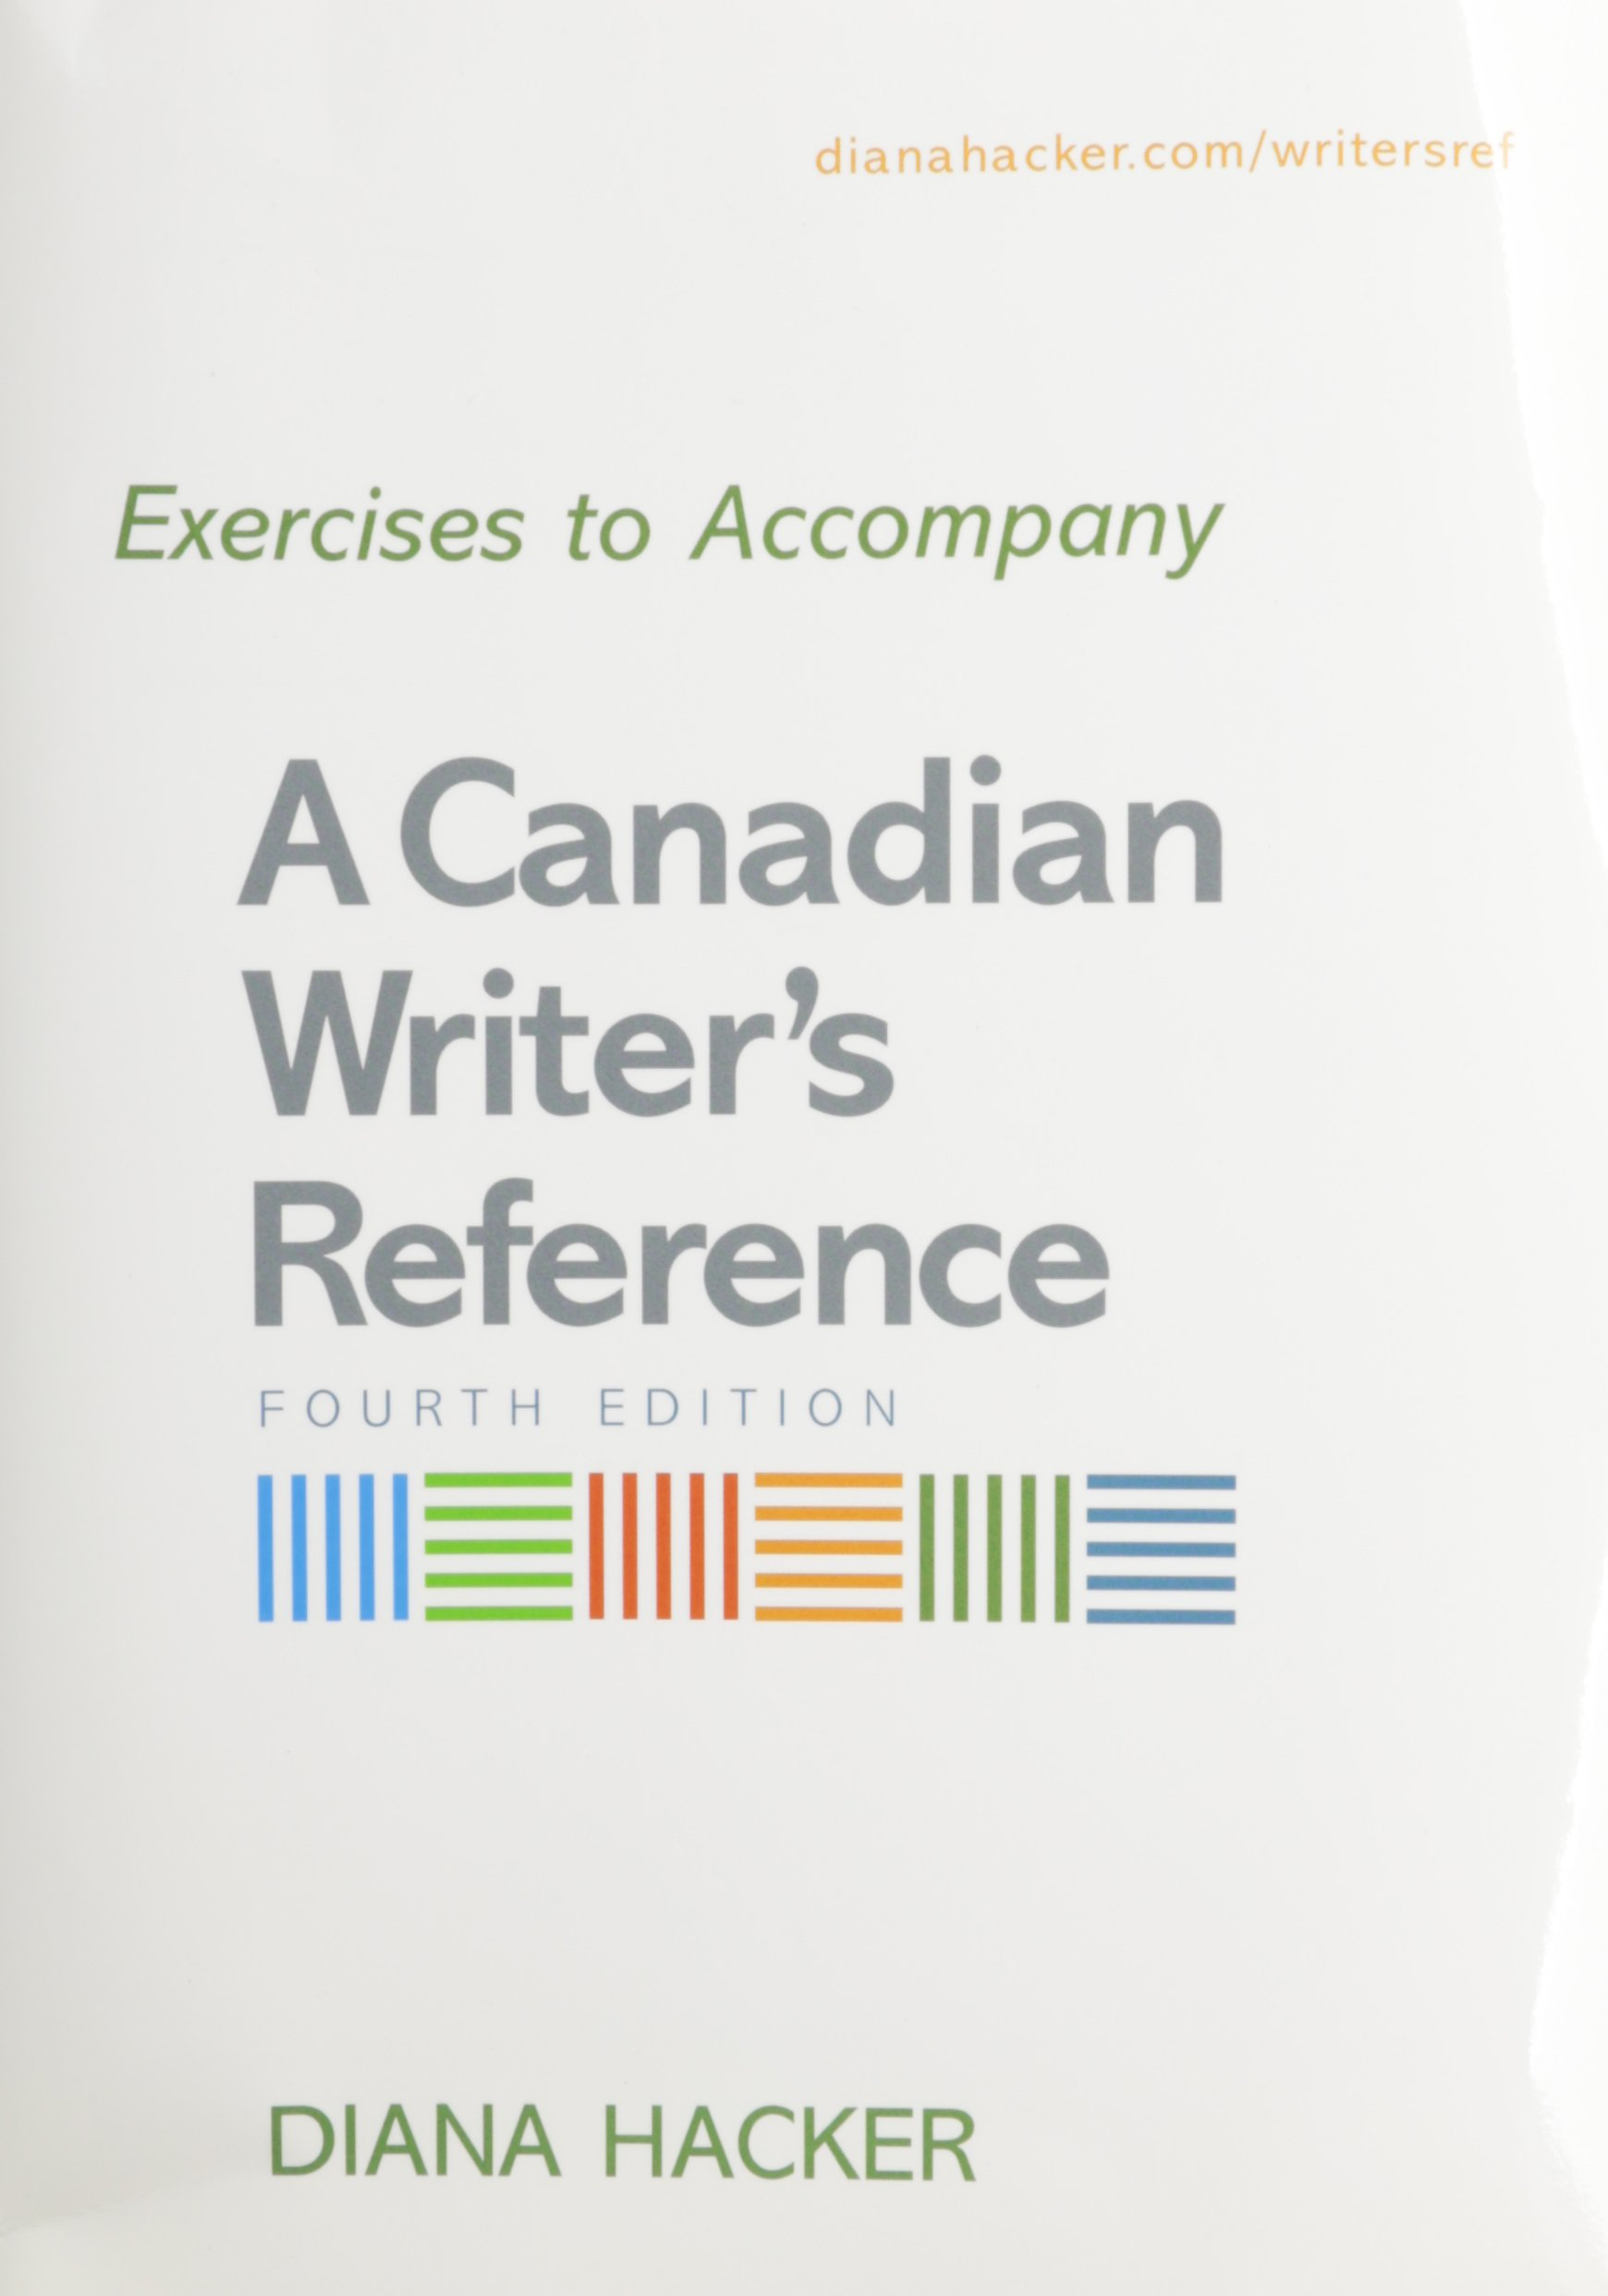 Canadian Writer's Reference 4th Ed + Exercises Plastic Comb – Dec 26 2007